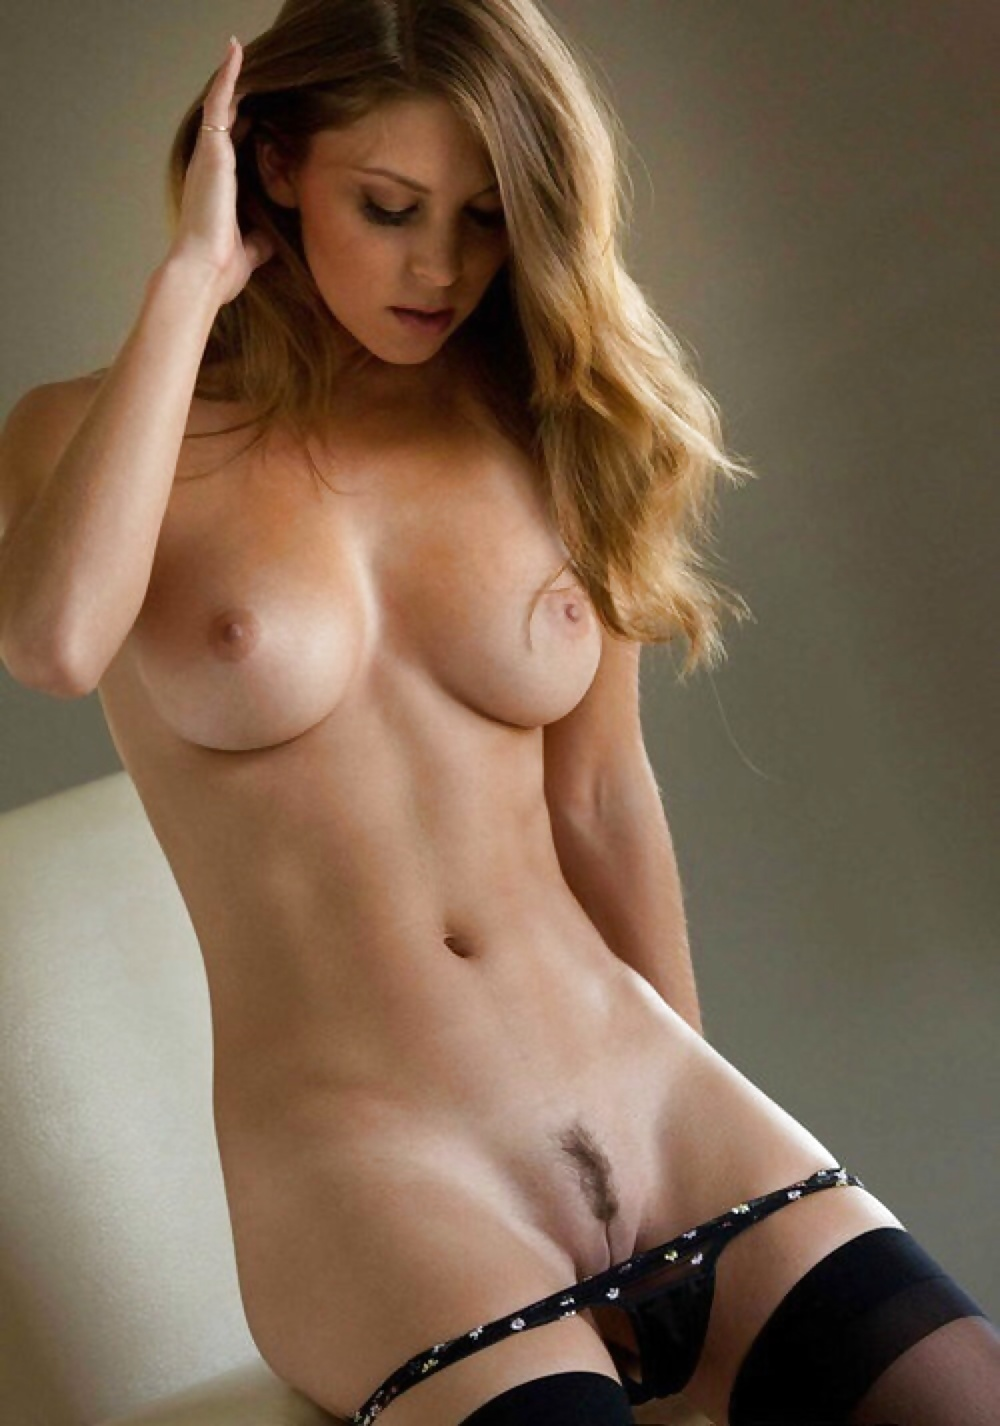 Sexy Landing Strips On Images On Women